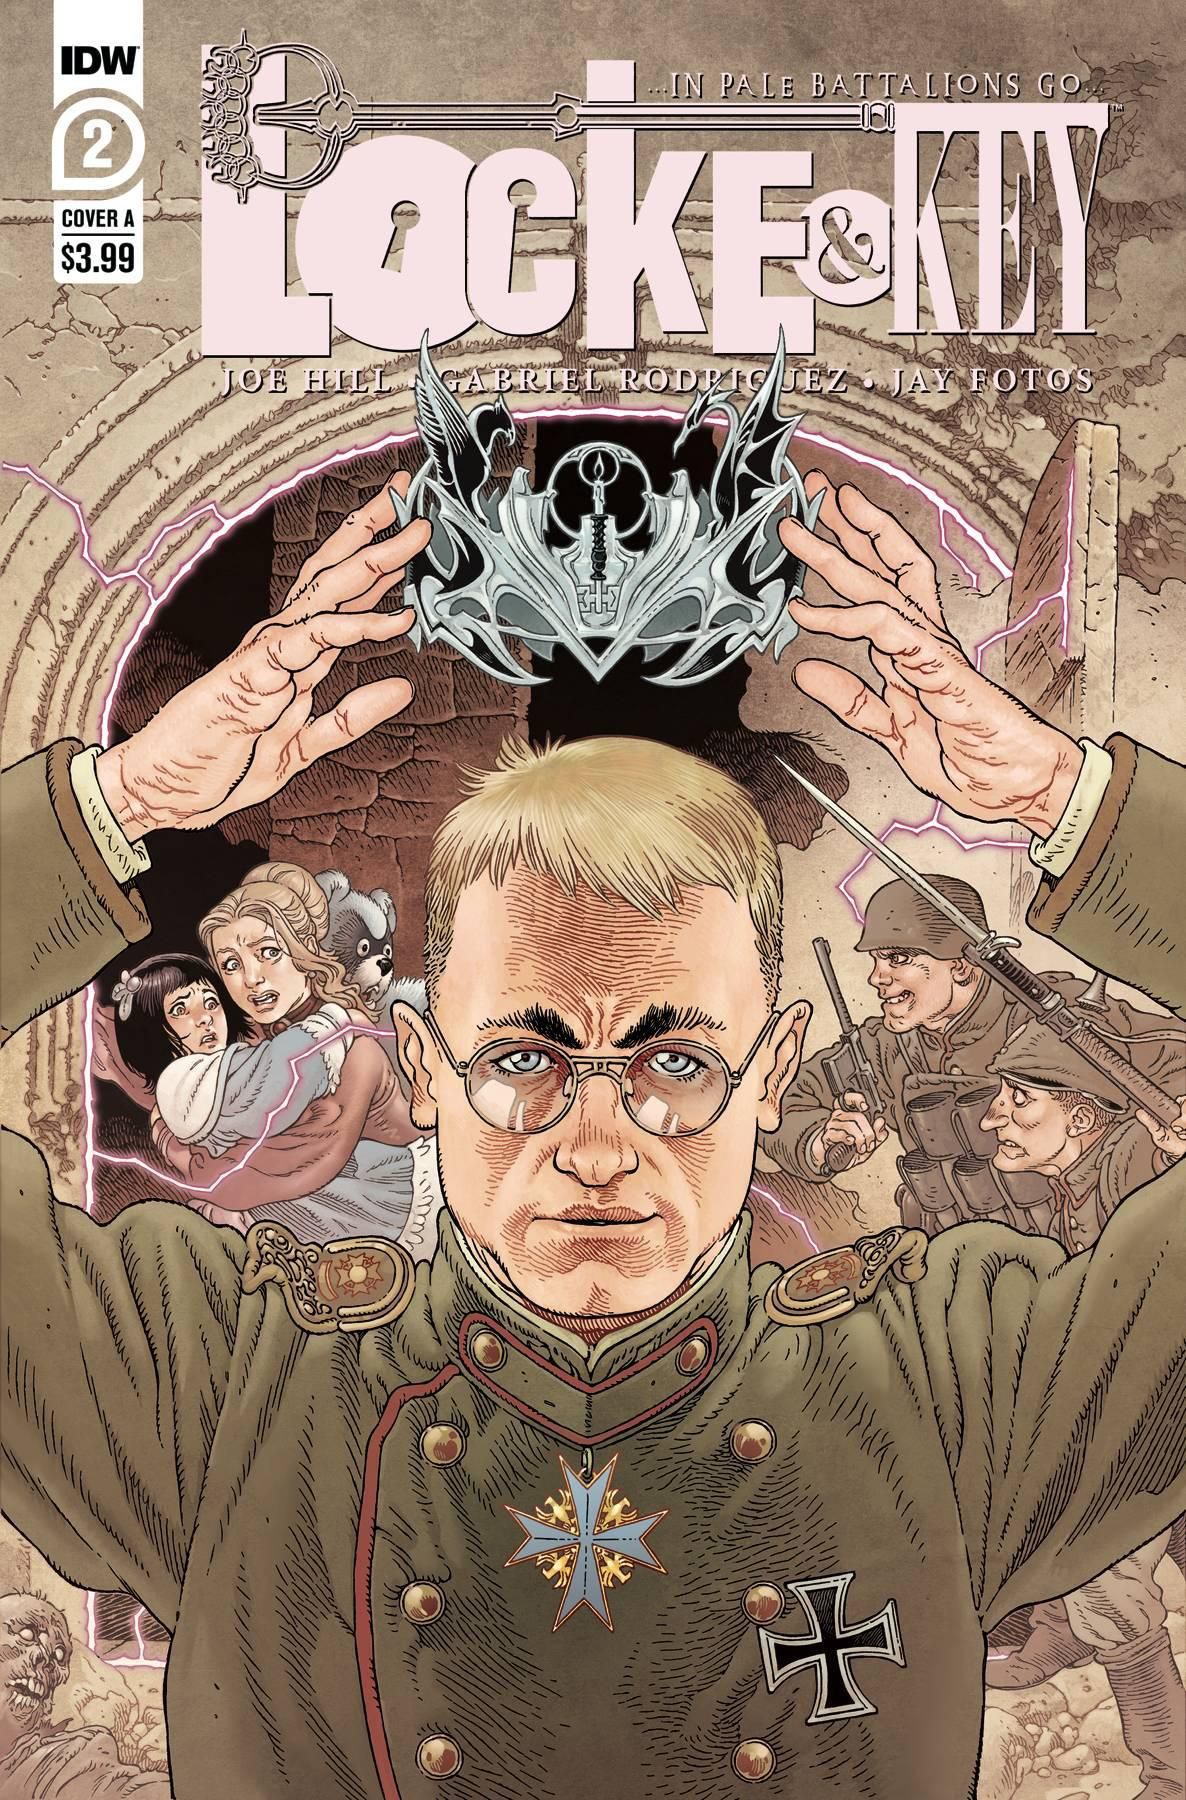 LOCKE & KEY IN PALE BATTALIONS GO #2 (OF 3)